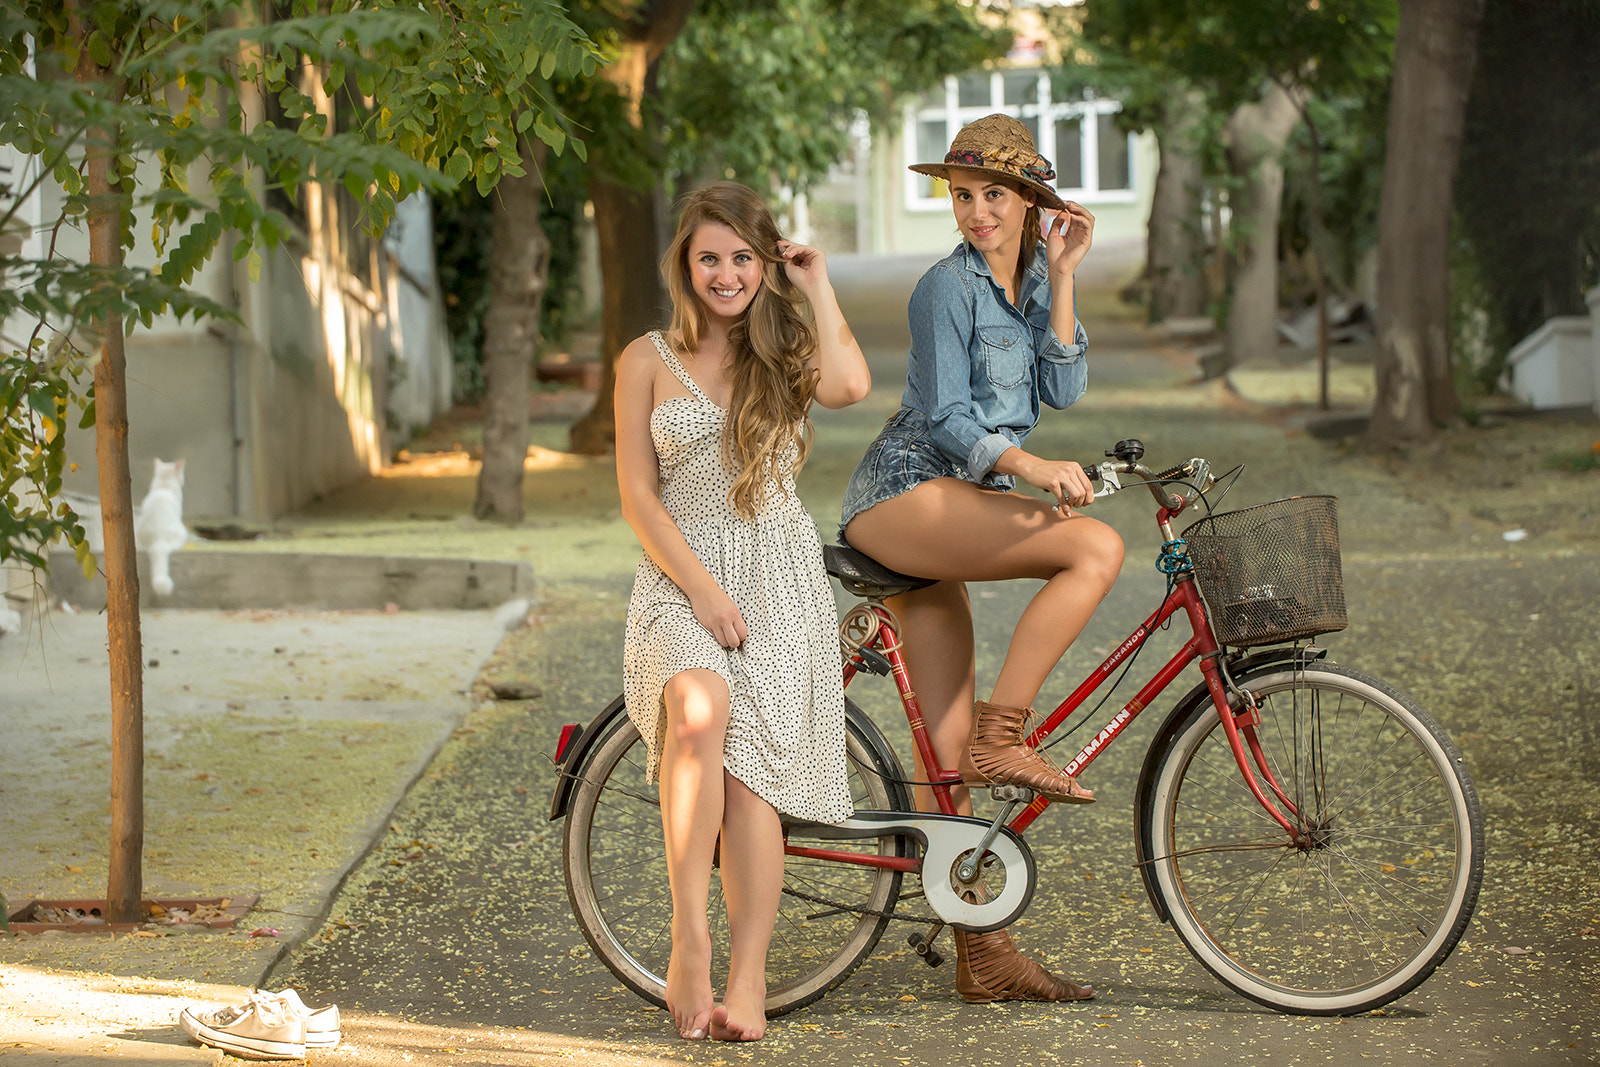 Photograph Bicycle Beauties by Serhan 王 Oksay on 500px